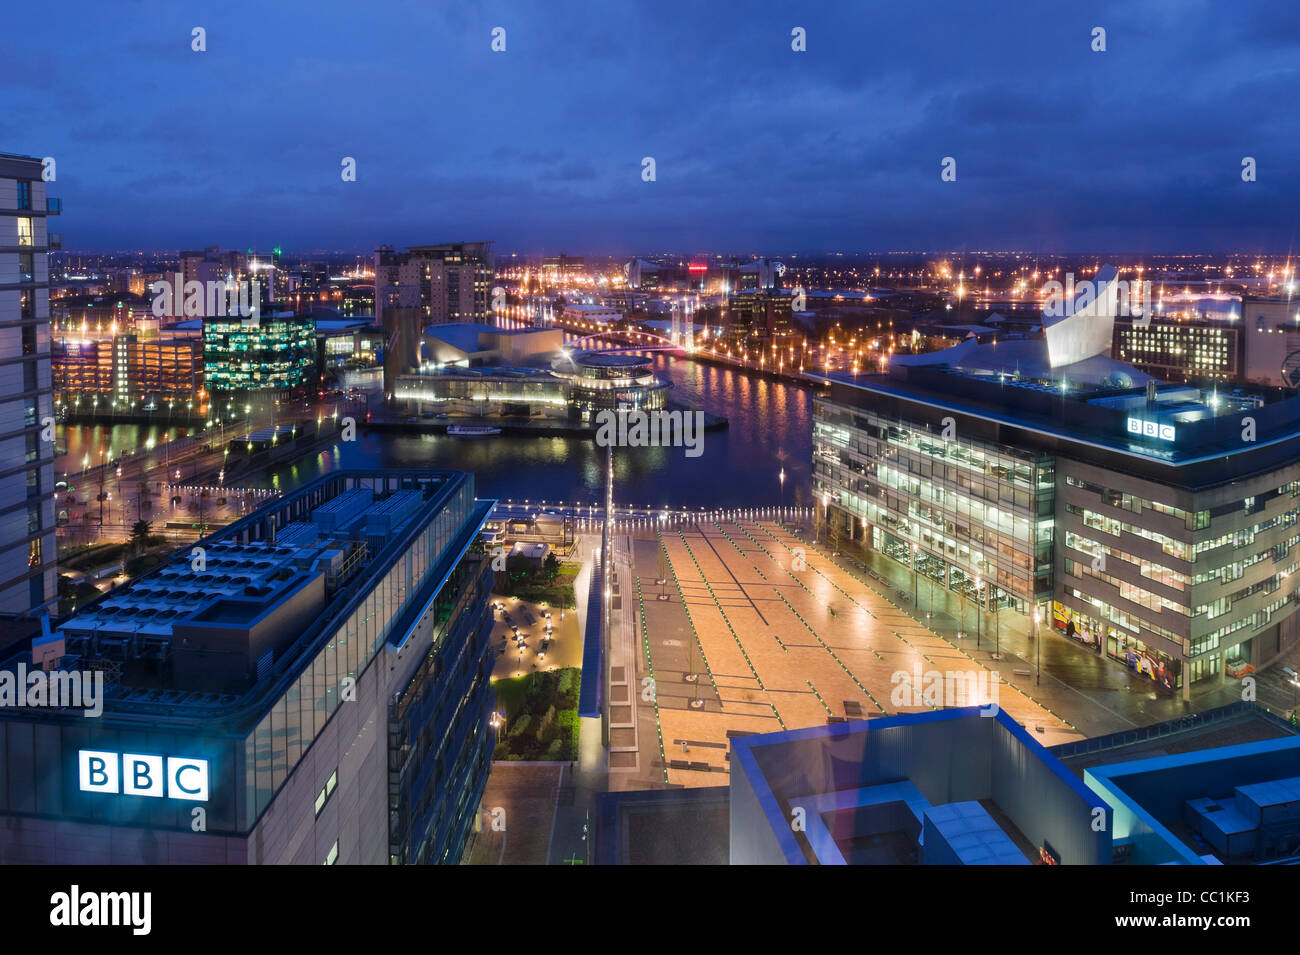 View over Salford Quays from MediaCityUK with the BBC studios in the foreground, Salford Quays, Manchester, UK - Stock Image